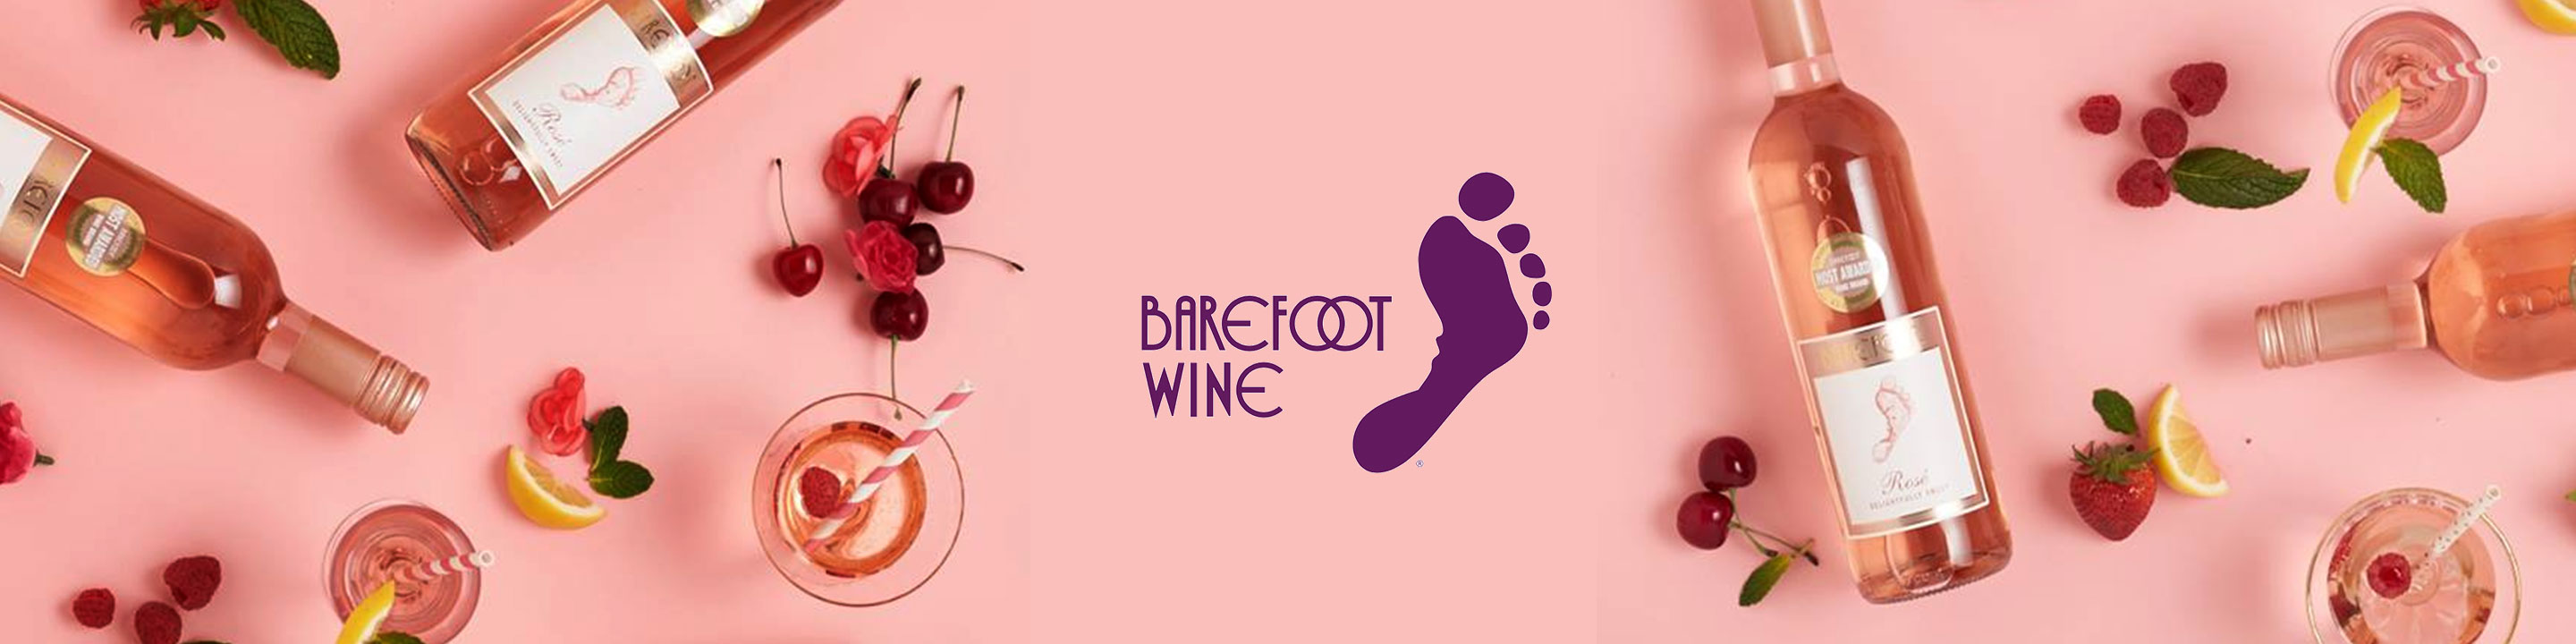 Barefoot believes in bringing people together – with wine. That's why their mission is to introduce new friends to wines that are fun, flavorful, and approachable. As the most awarded wine brand in the world, Barefoot wines are constantly making new friends around the globe because life's more fun when we're together!